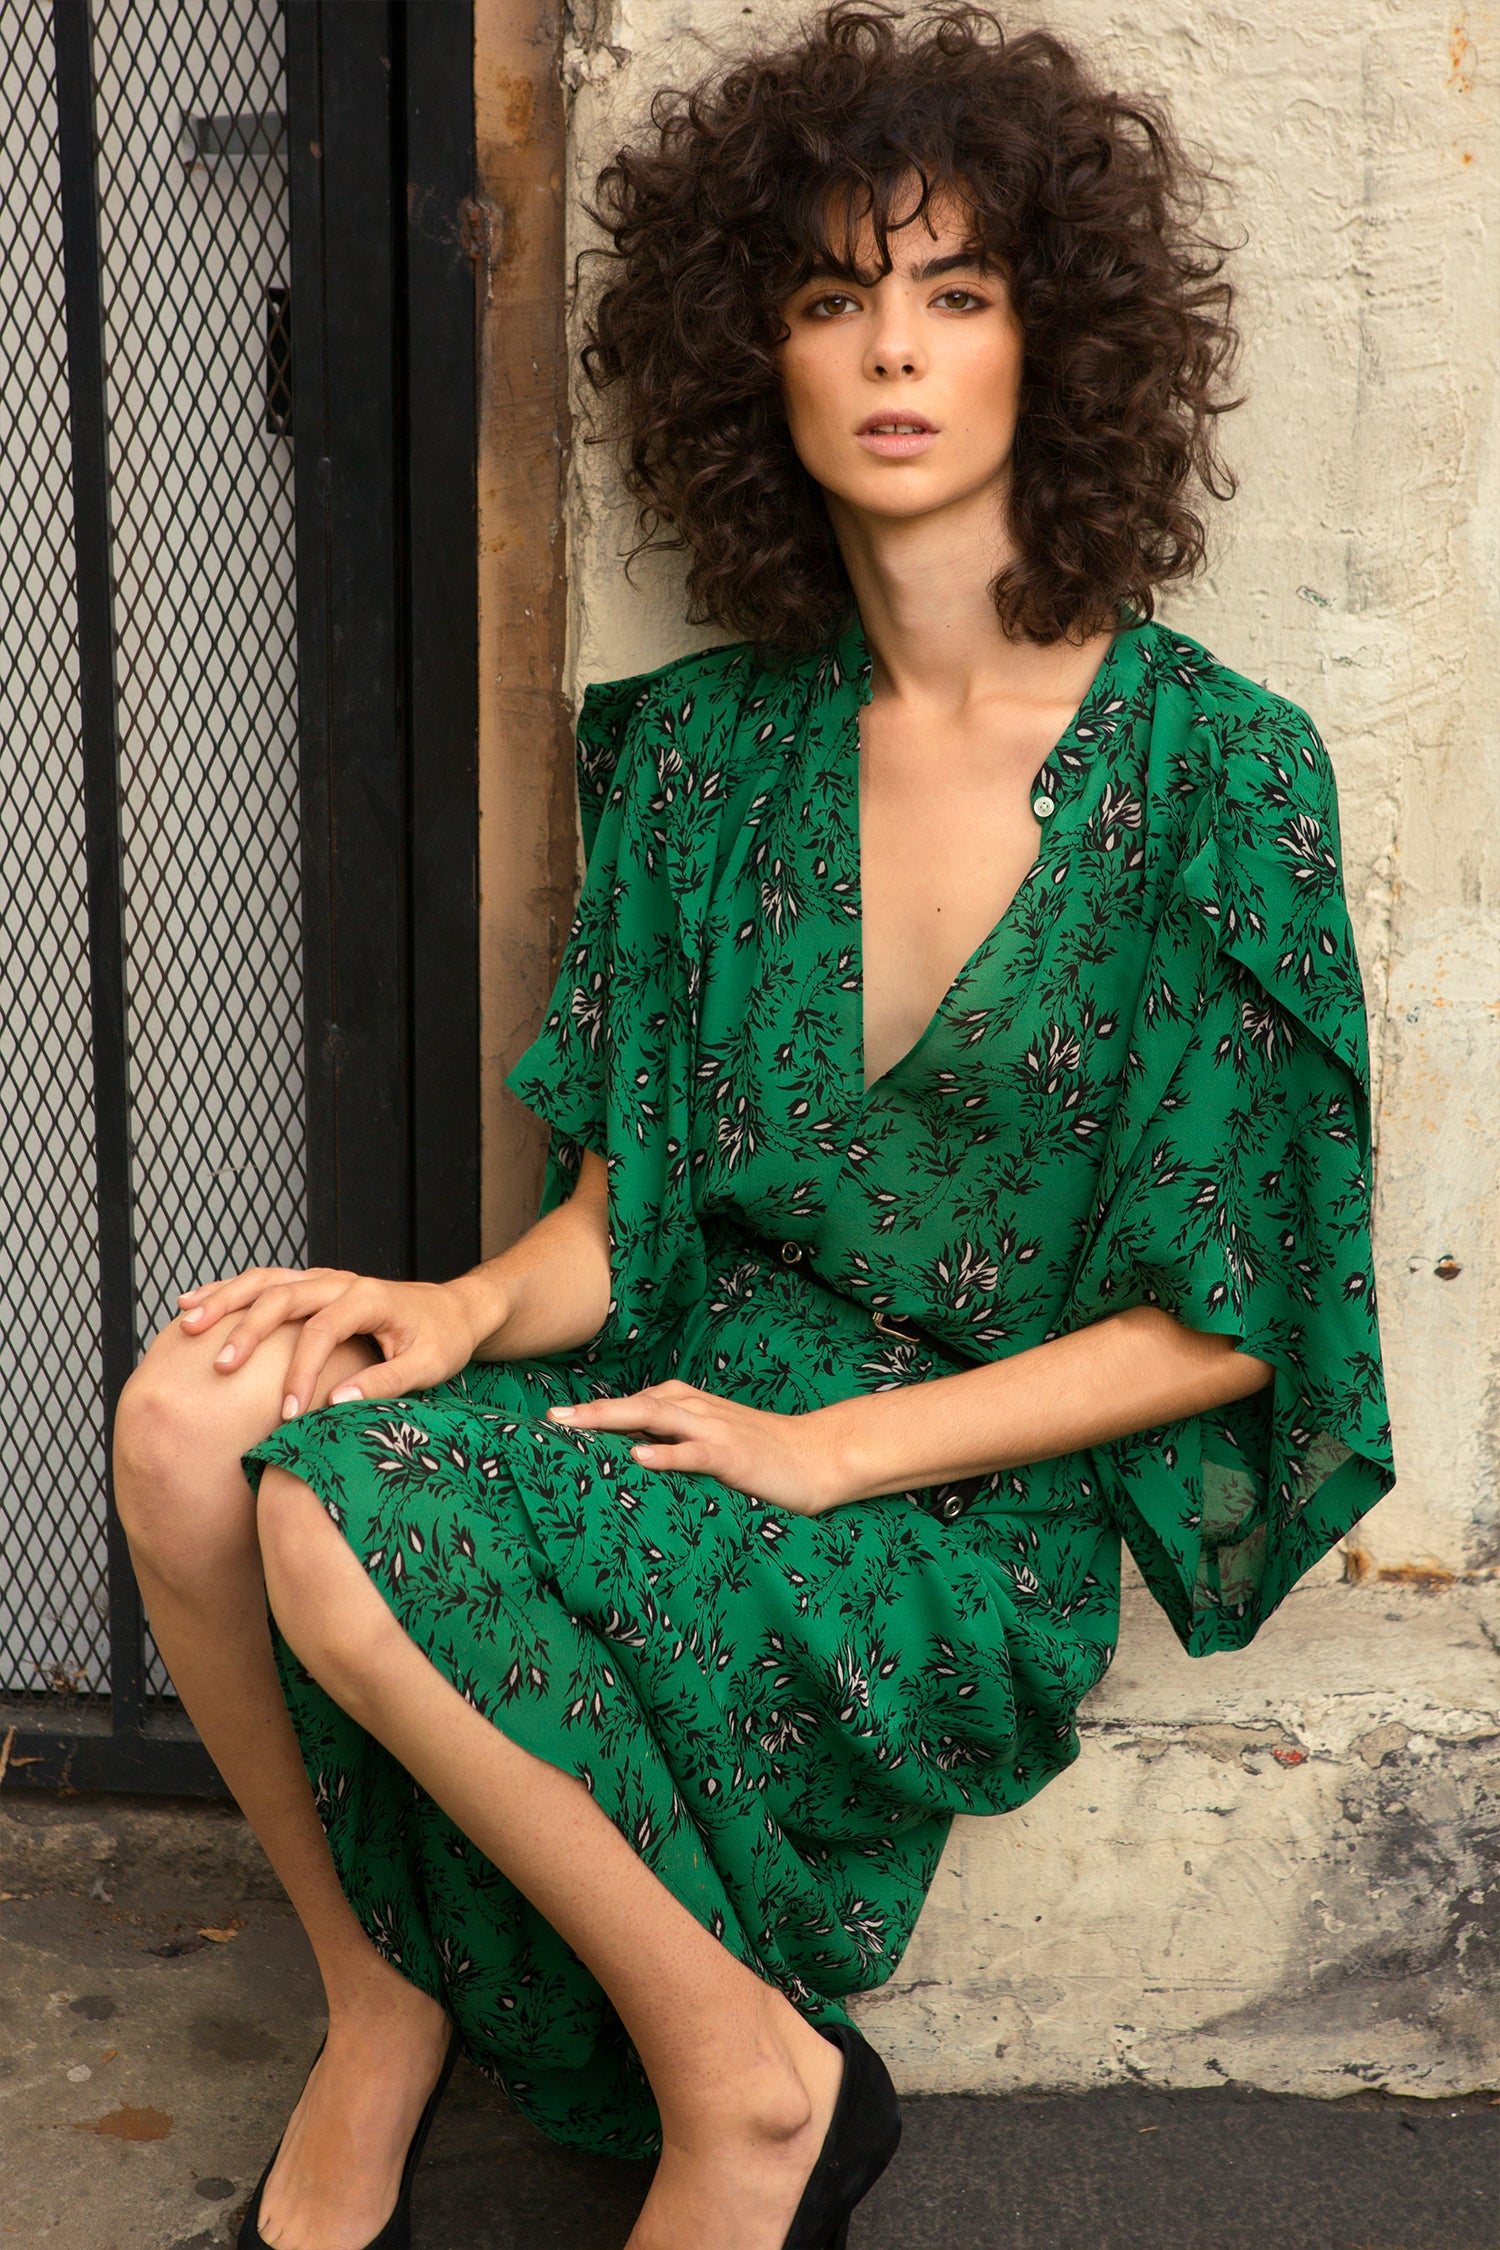 Japanese Floral Dress Robert Rodriguez Studio Emerald Orchid Pre Fall 2018